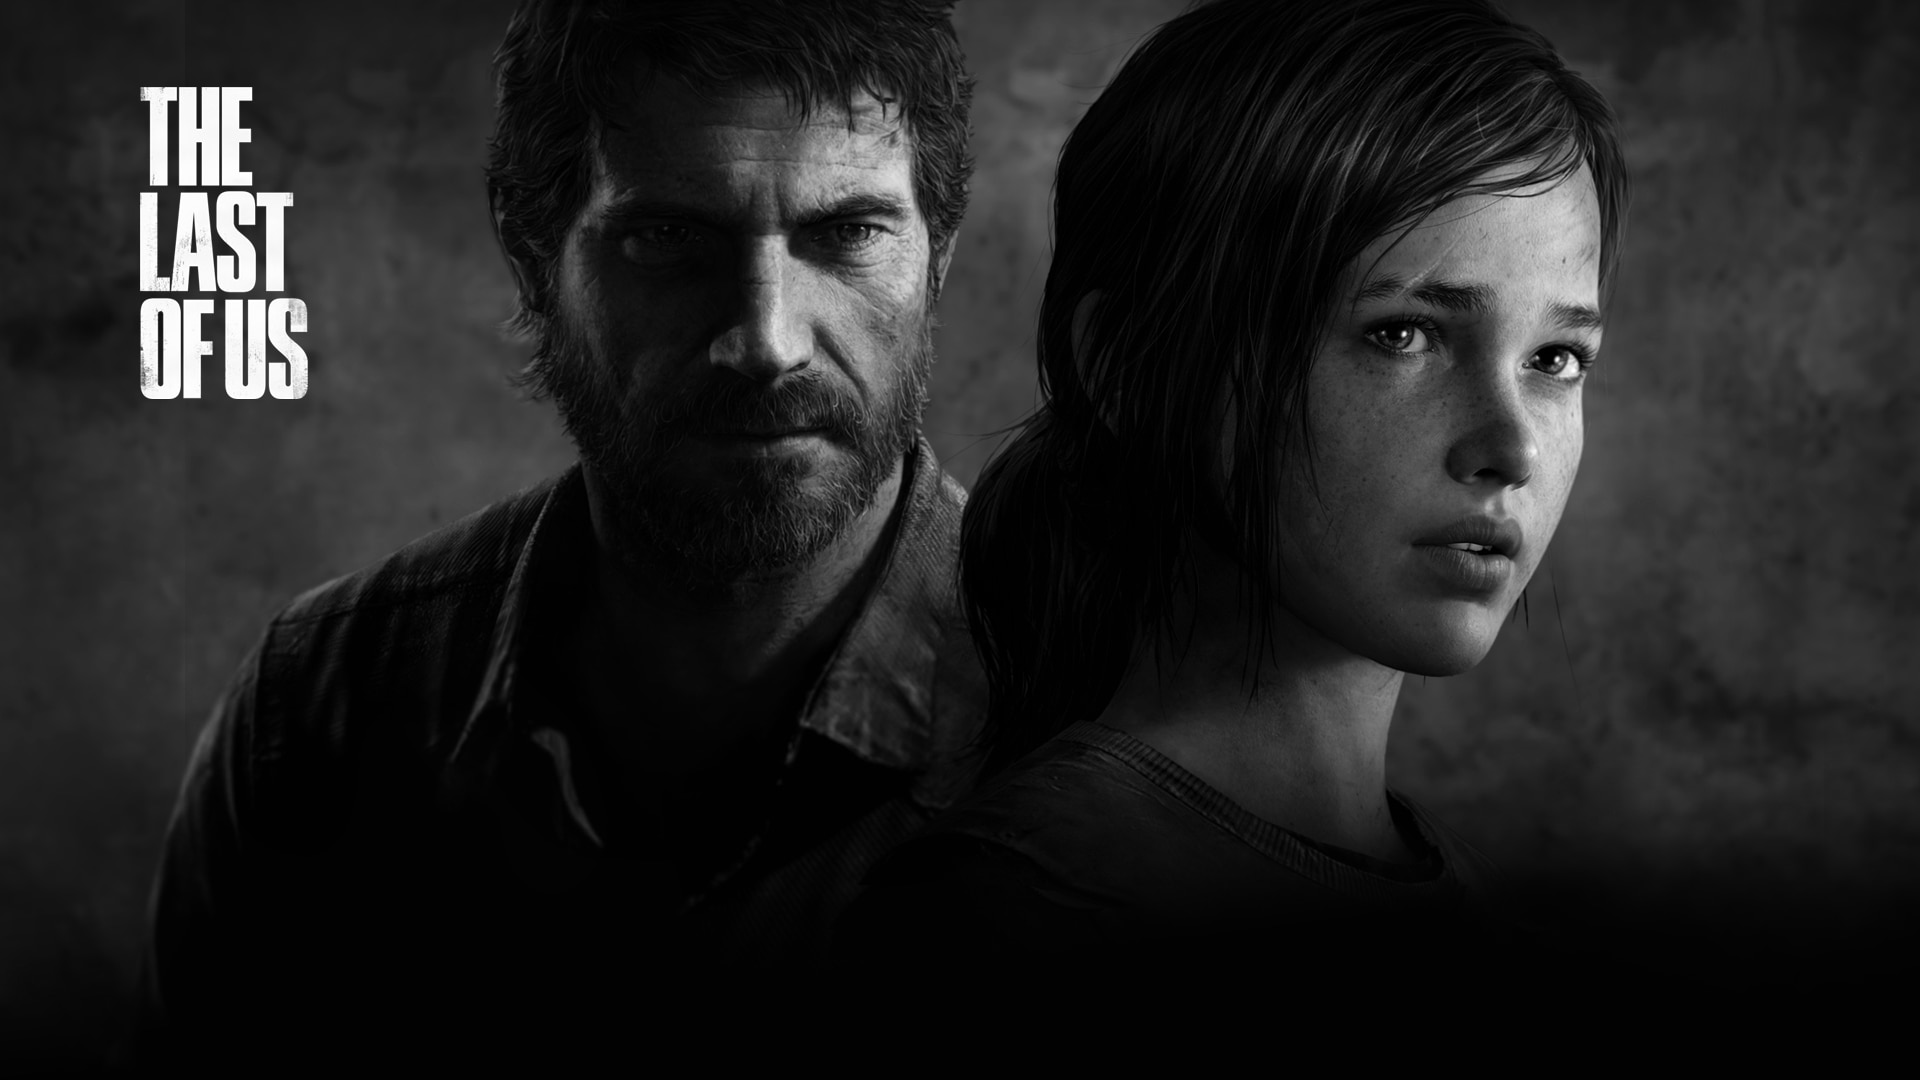 The Last of Us™ Left Behind Stand Alone (PS4 Version) (Simplified Chinese, English, Korean)